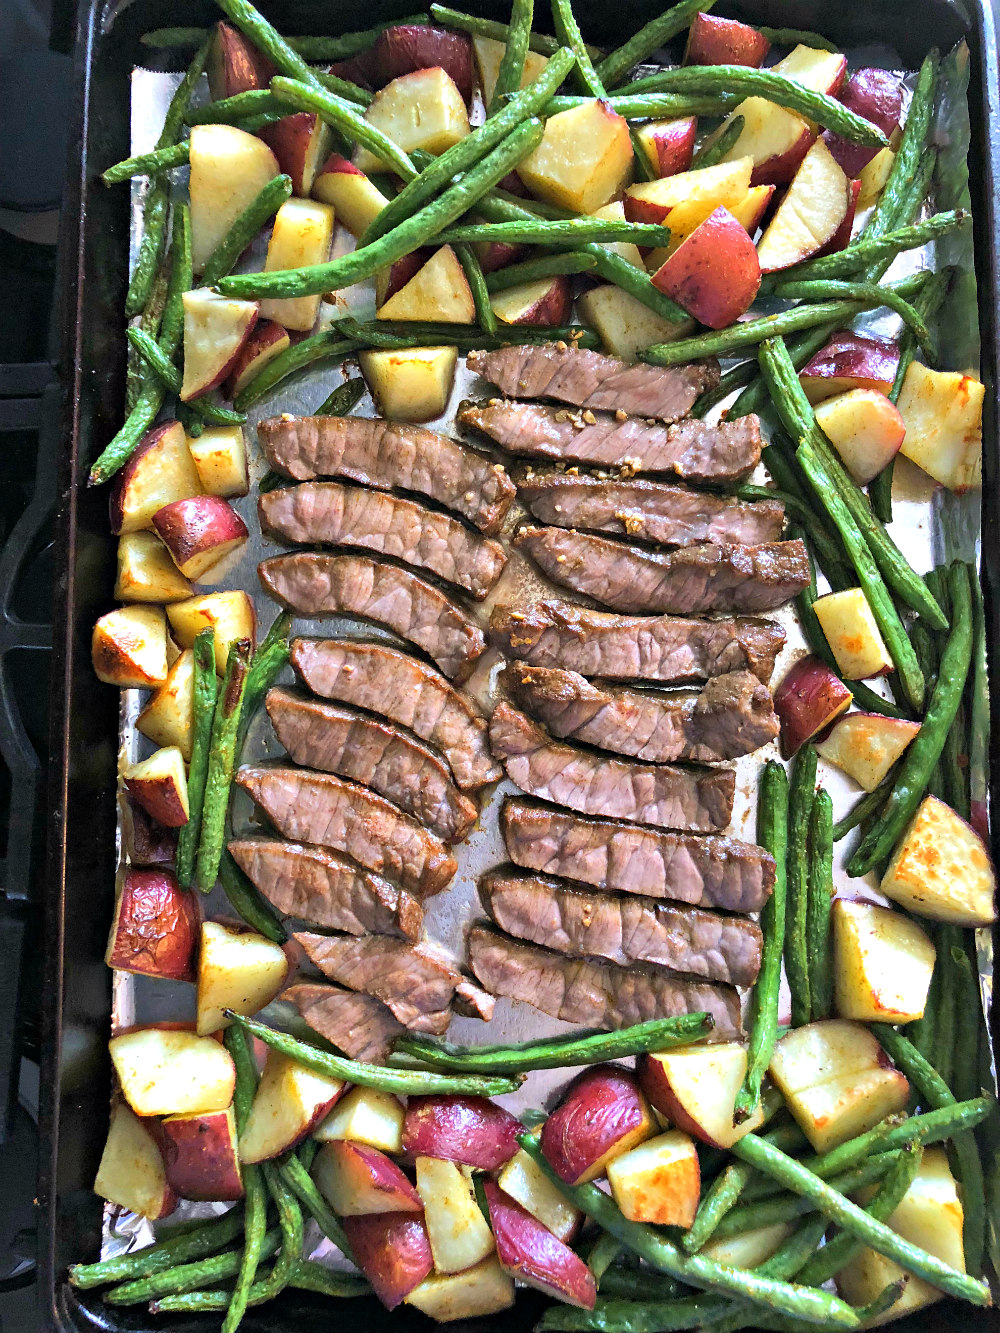 Sheet Pan Steak With Green Beans And Red Skin Potatoes